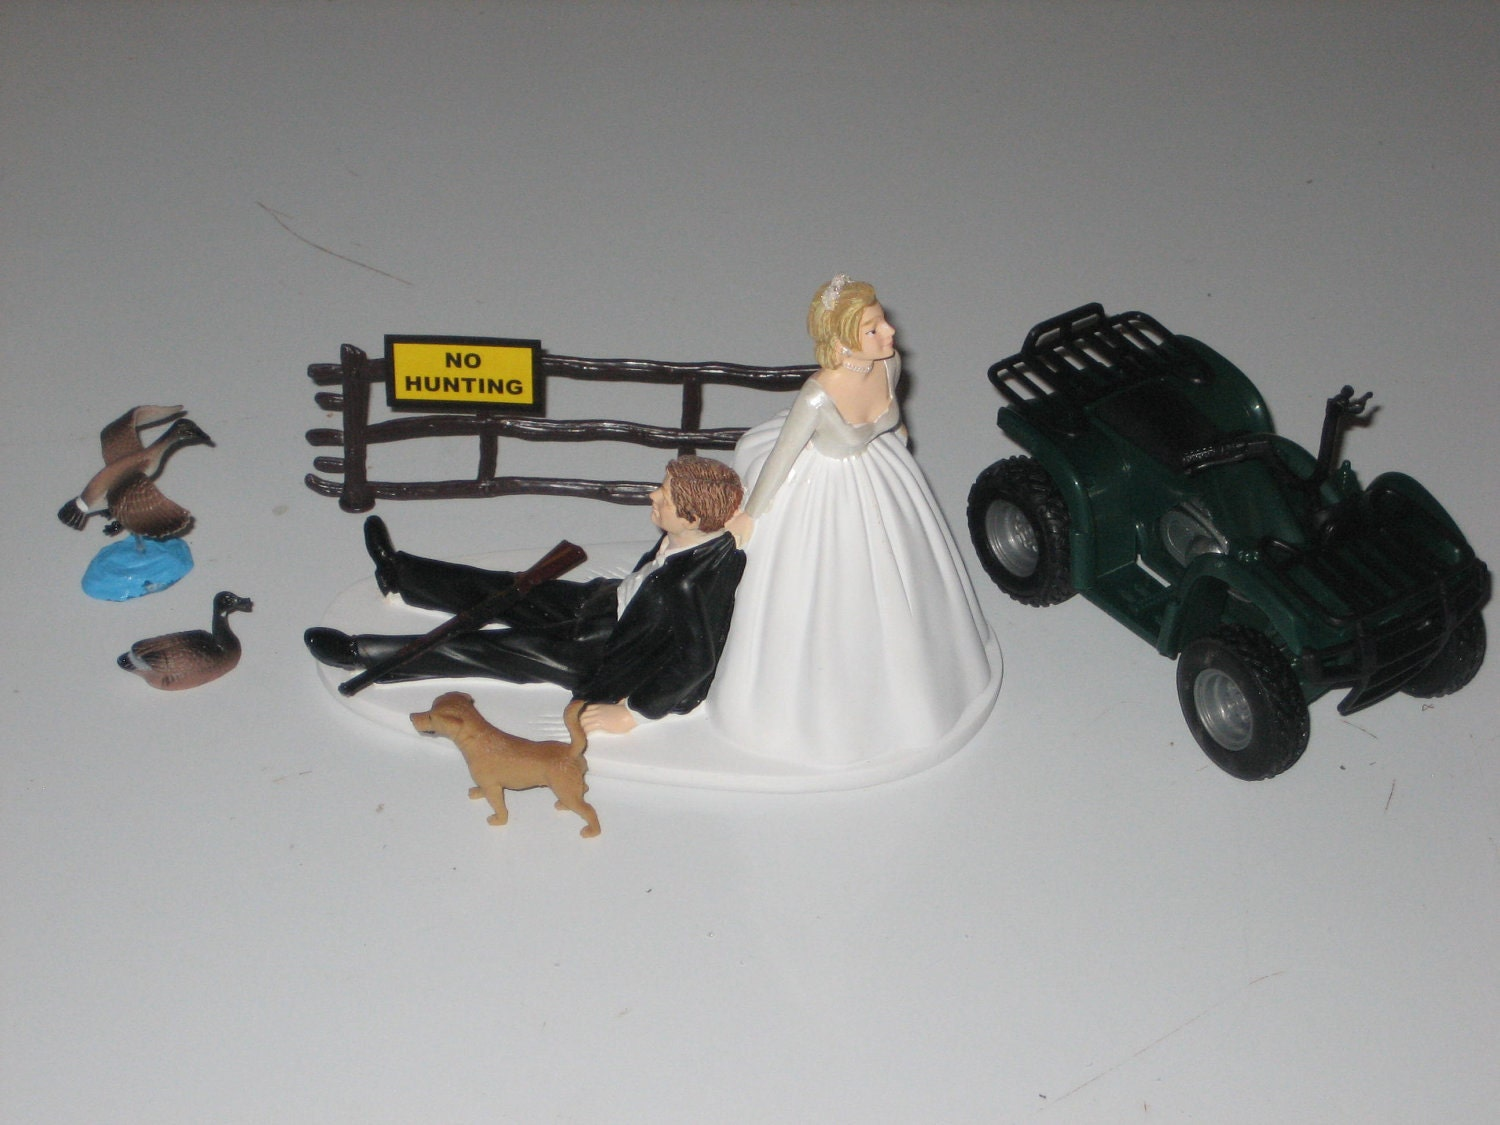 Goose Geese Hunting Wedding Cake Topper Groom s Cake by